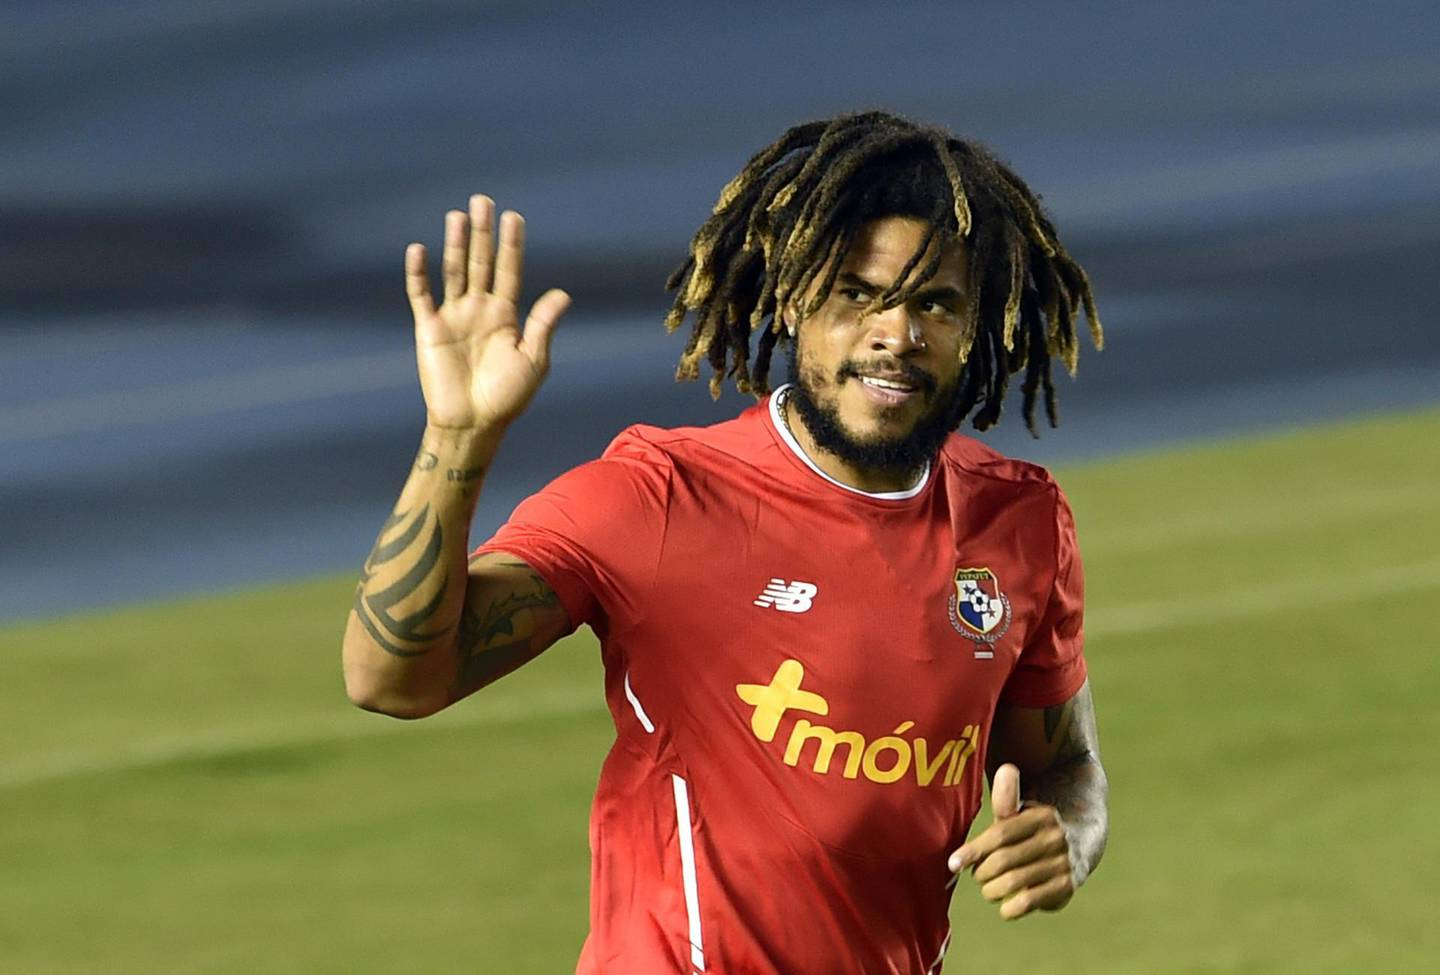 Panama's footballer Roman Torres waves to supporters during a training session of the national football team ahead of the FIFA 2018 World Cup, at the Rommel Fernandez Stadium on May 25, 2018 in Panama City. / AFP / RODRIGO ARANGUA